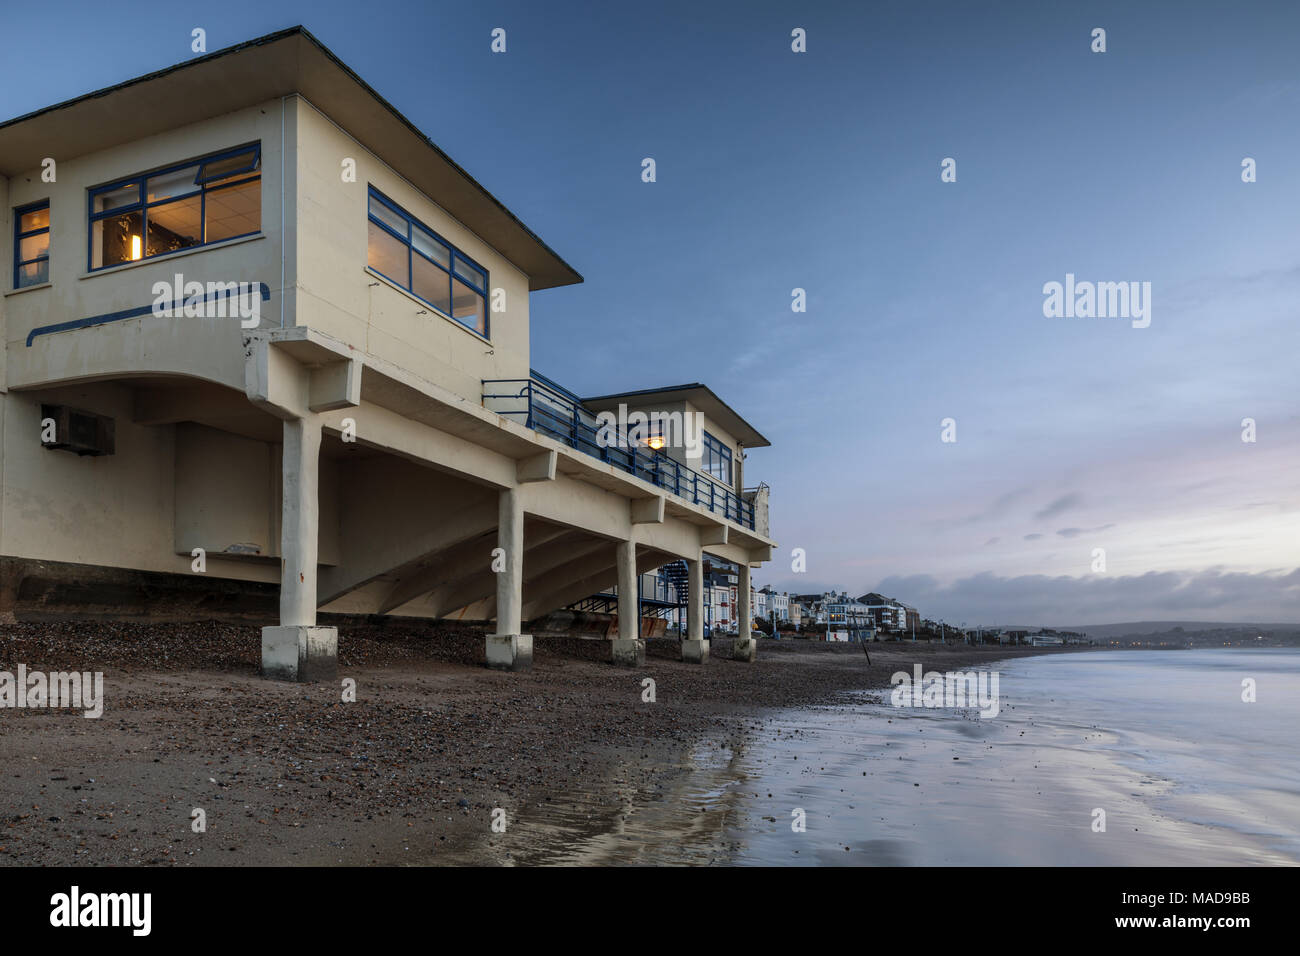 The art deco Pier Bandstand, Weymouth beach and seafront Promenade, Weymouth, Dorset, England, UK - Stock Image